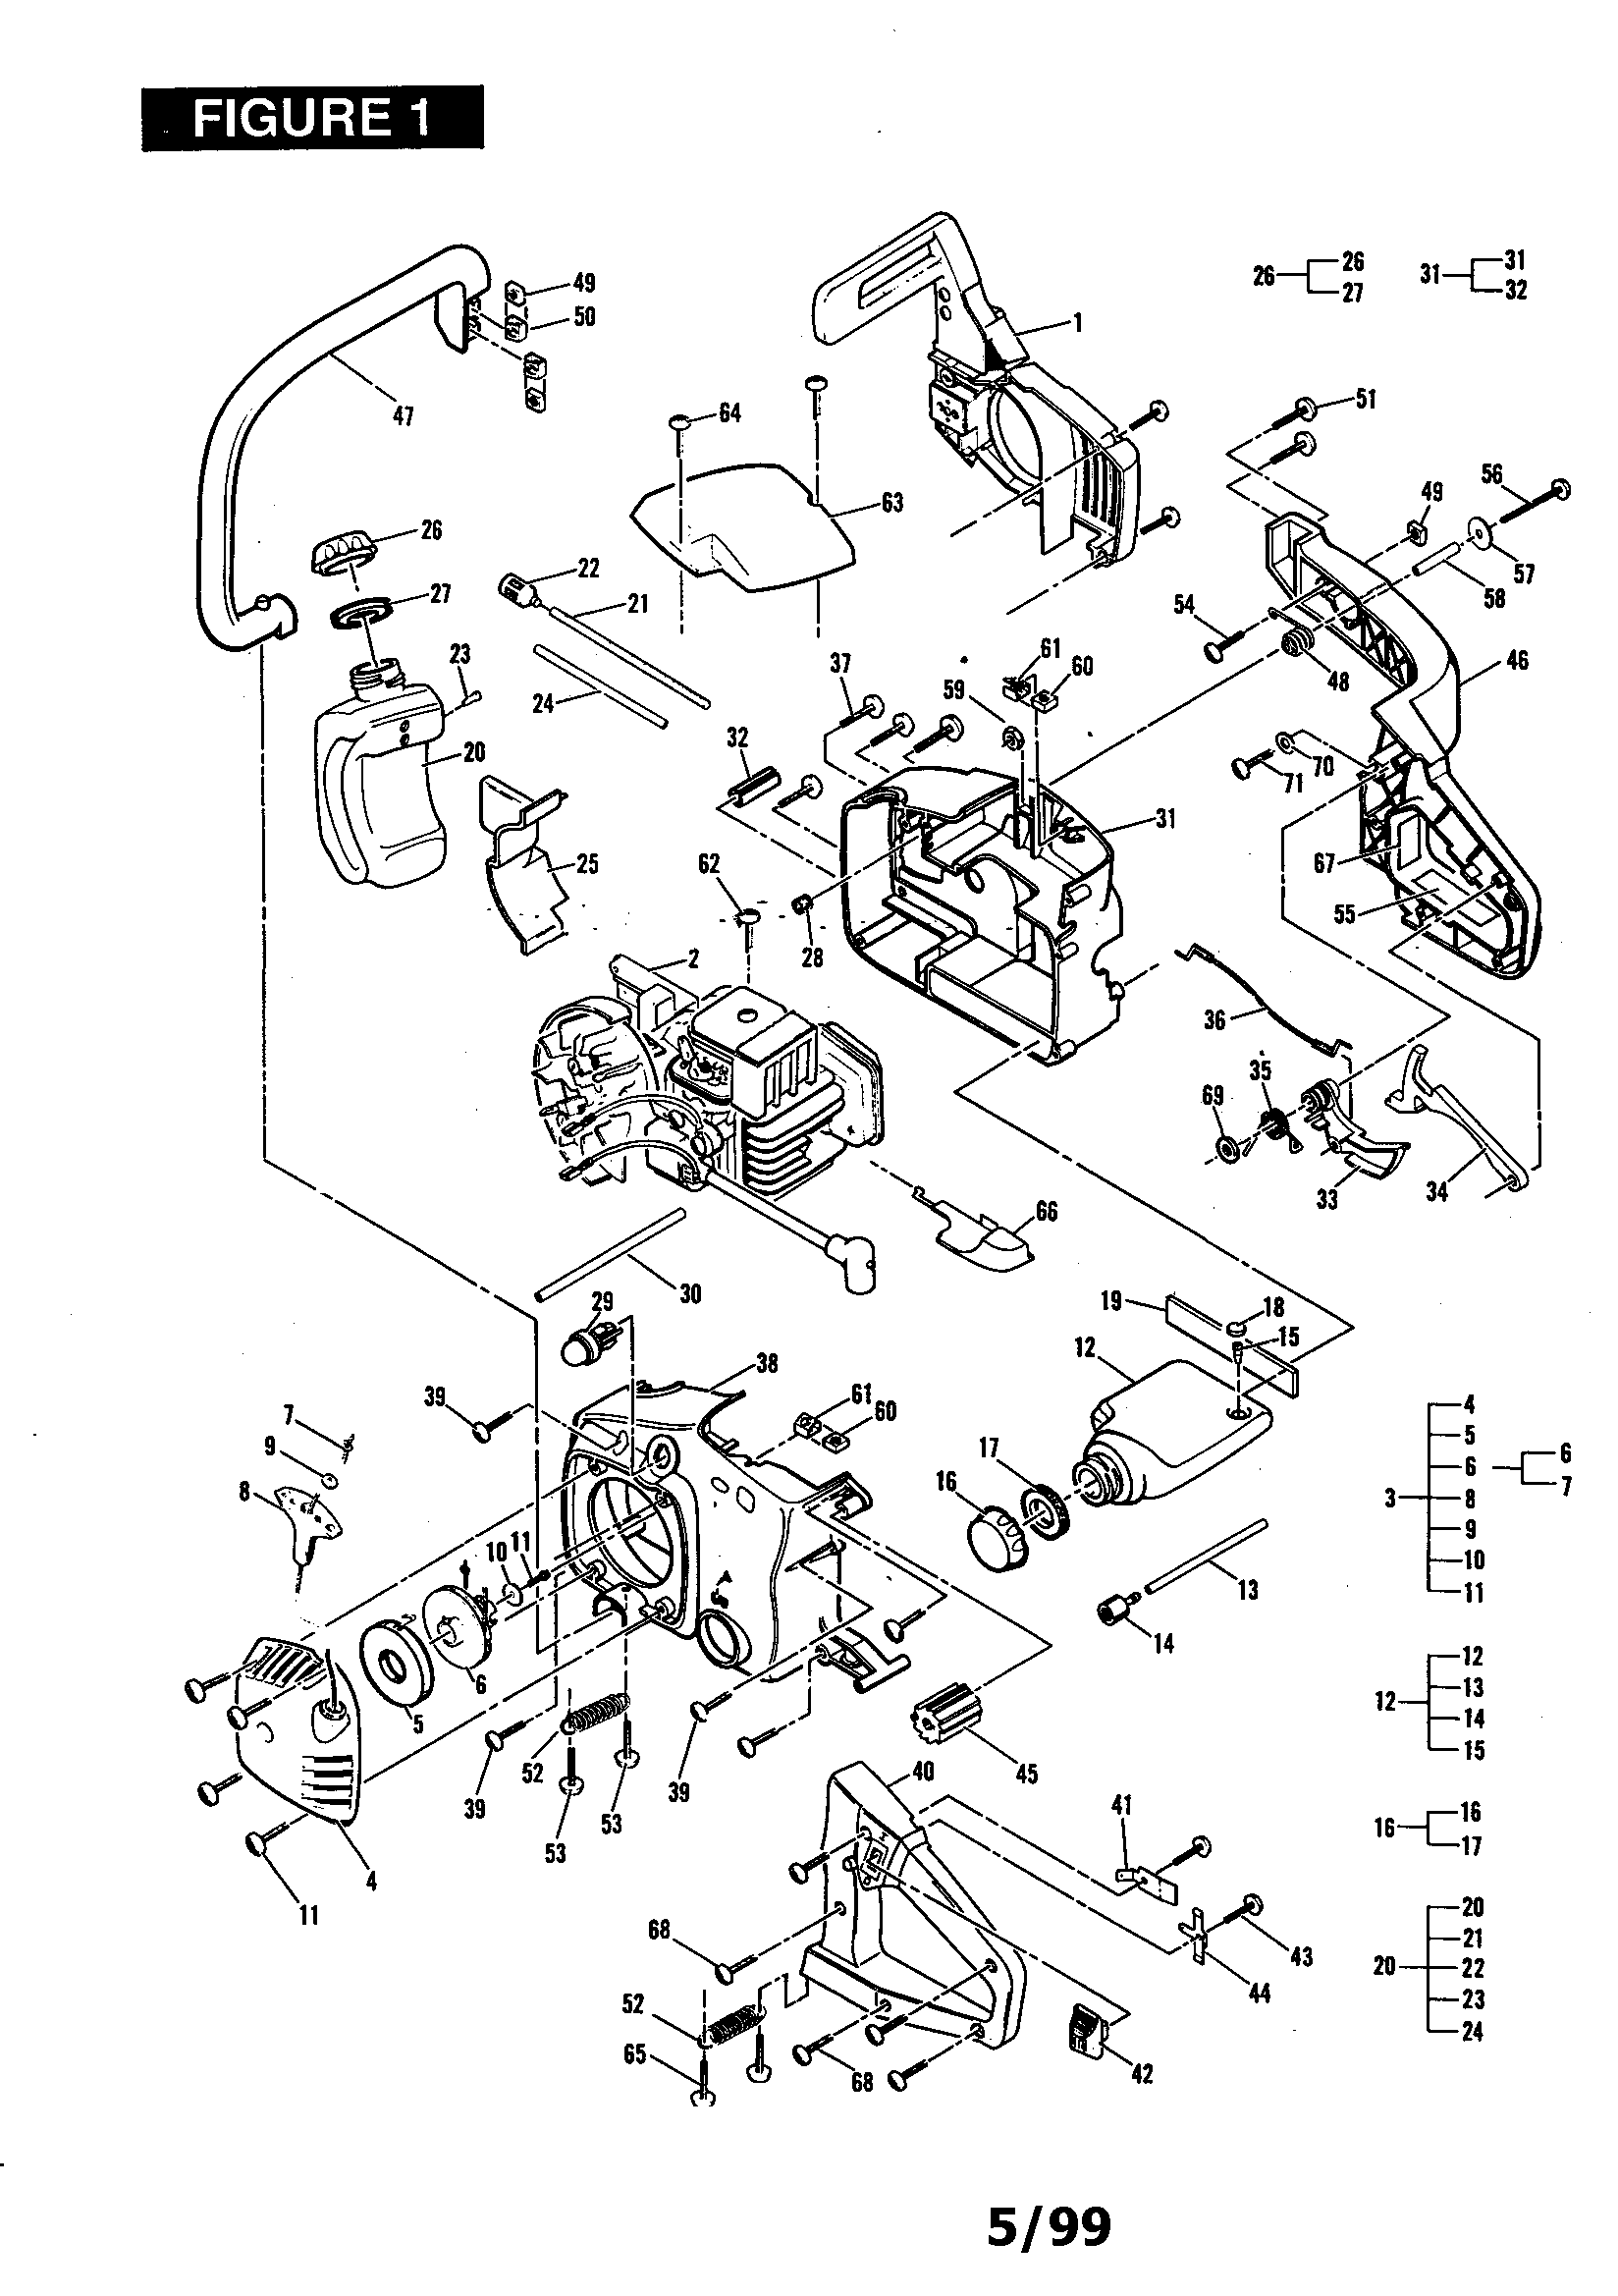 eager beaver chainsaw parts diagram boat battery wiring diagrams mcculloch model 2116 11 600035 14 gas genuine